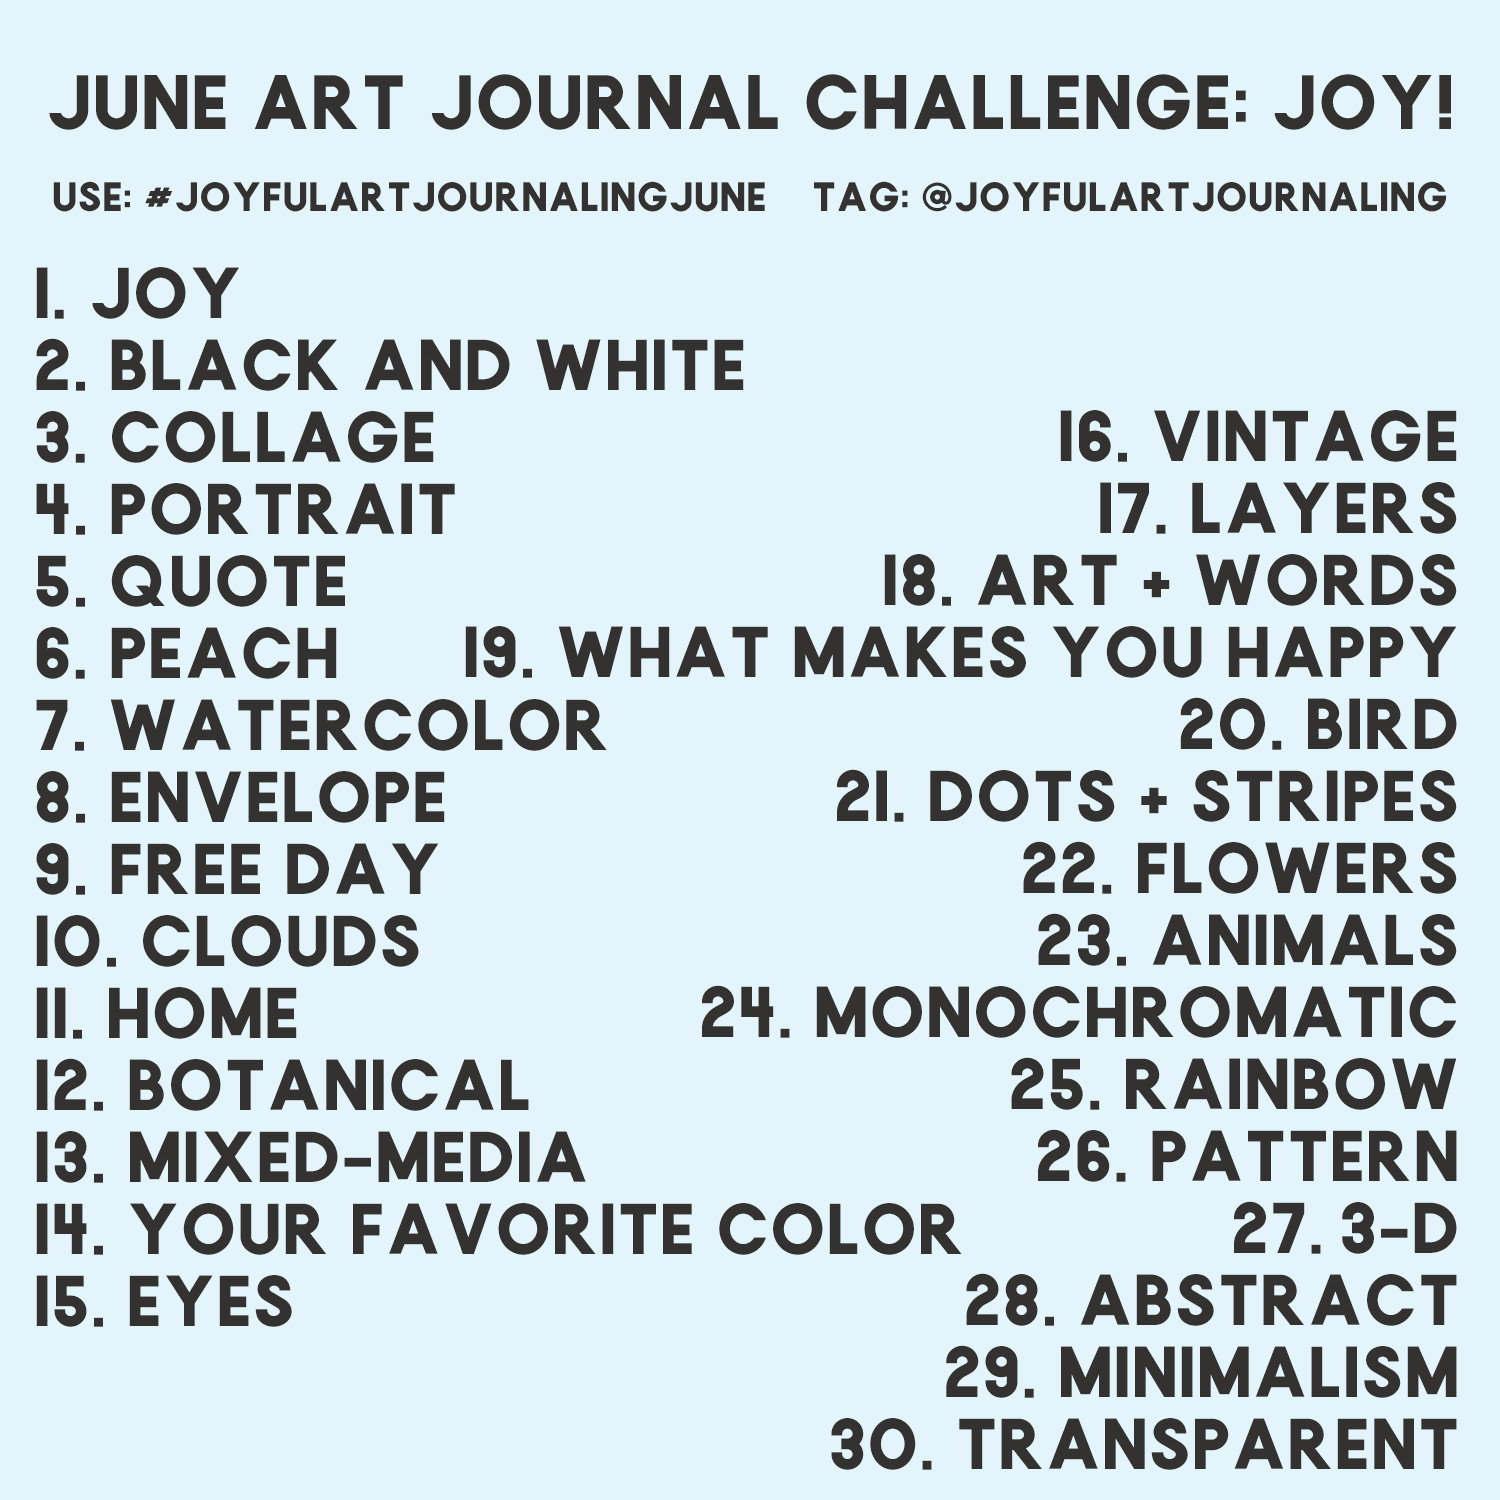 Using these 30 daily art journaling prompts, we'll create art journal spreads daily in June and share them on Instagram. Join us in this 30 day art journal challenge! #joyfulartjournaling